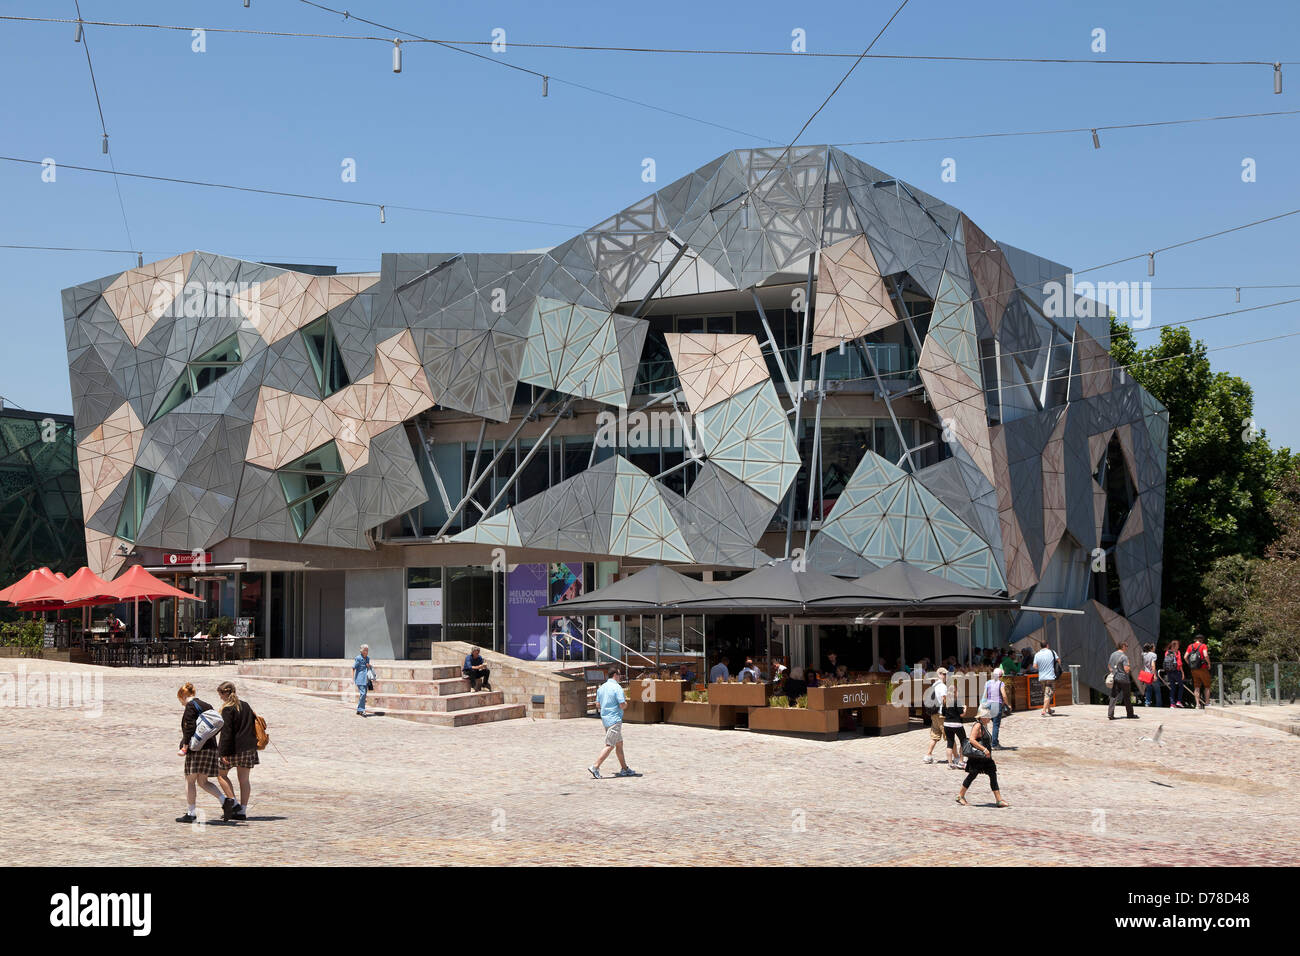 Australian Centre for the Moving Image at Federation Square, Victoria, Australia - Stock Image